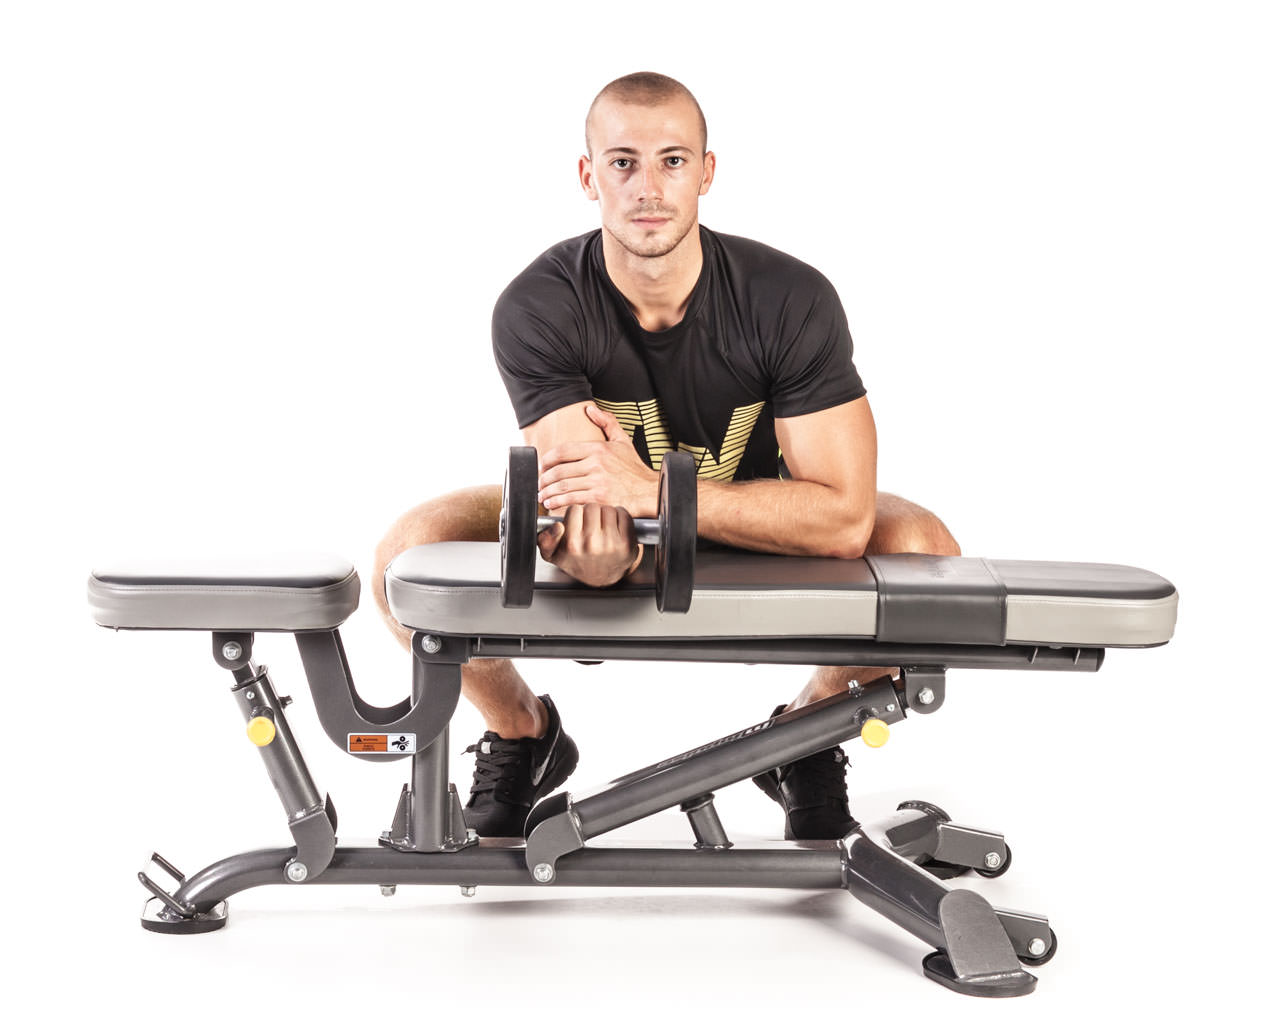 One-Arm Dumbbell Wrist Curl Over a Bench frame #2